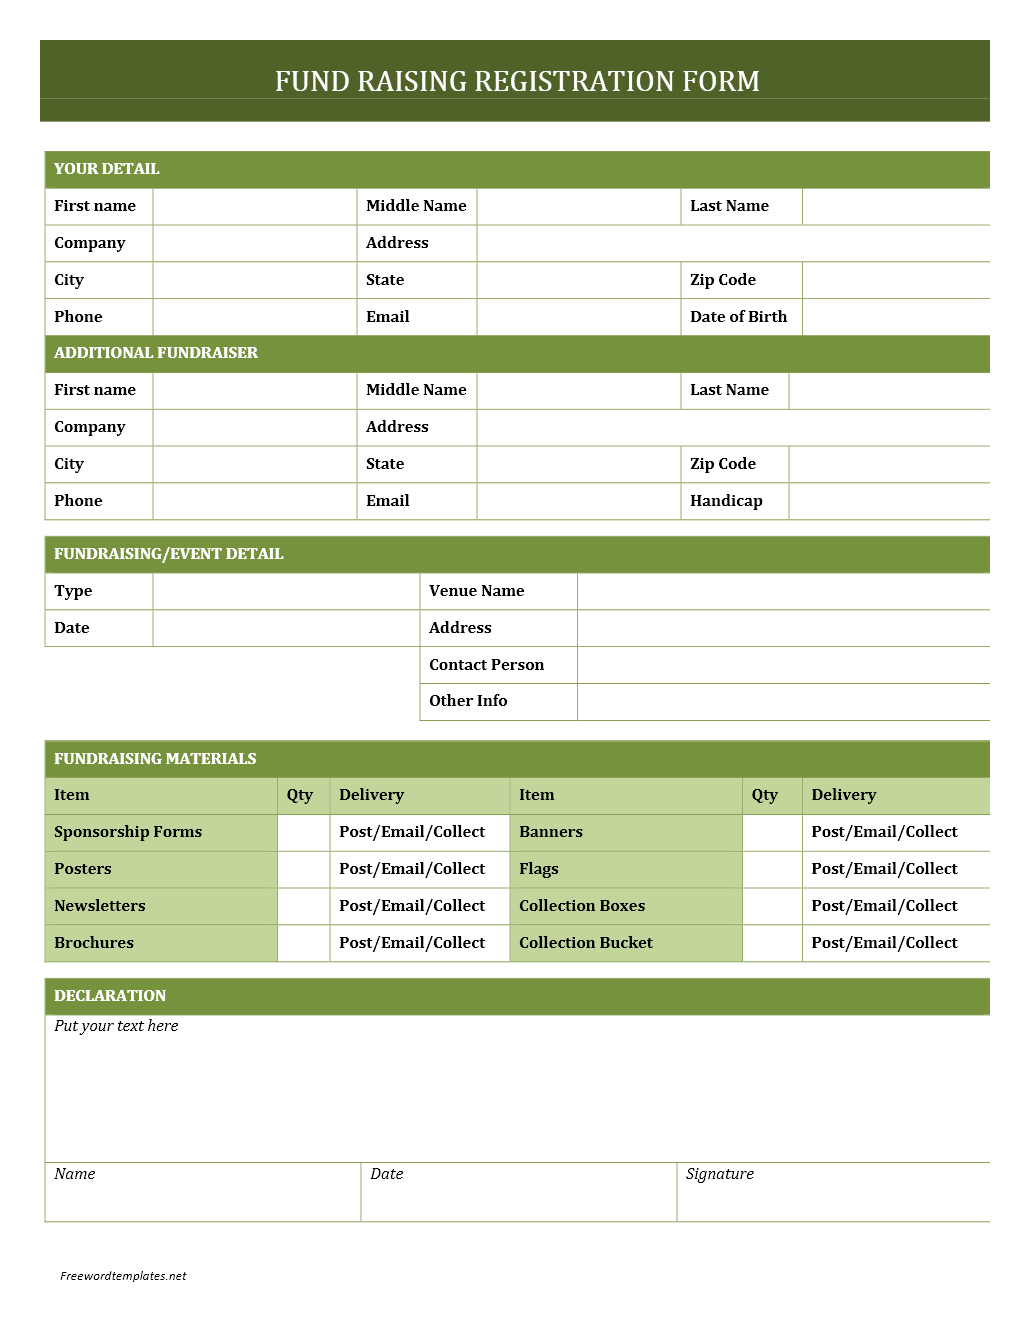 Fundraising Registration Form Template  Customer Registration Form Sample